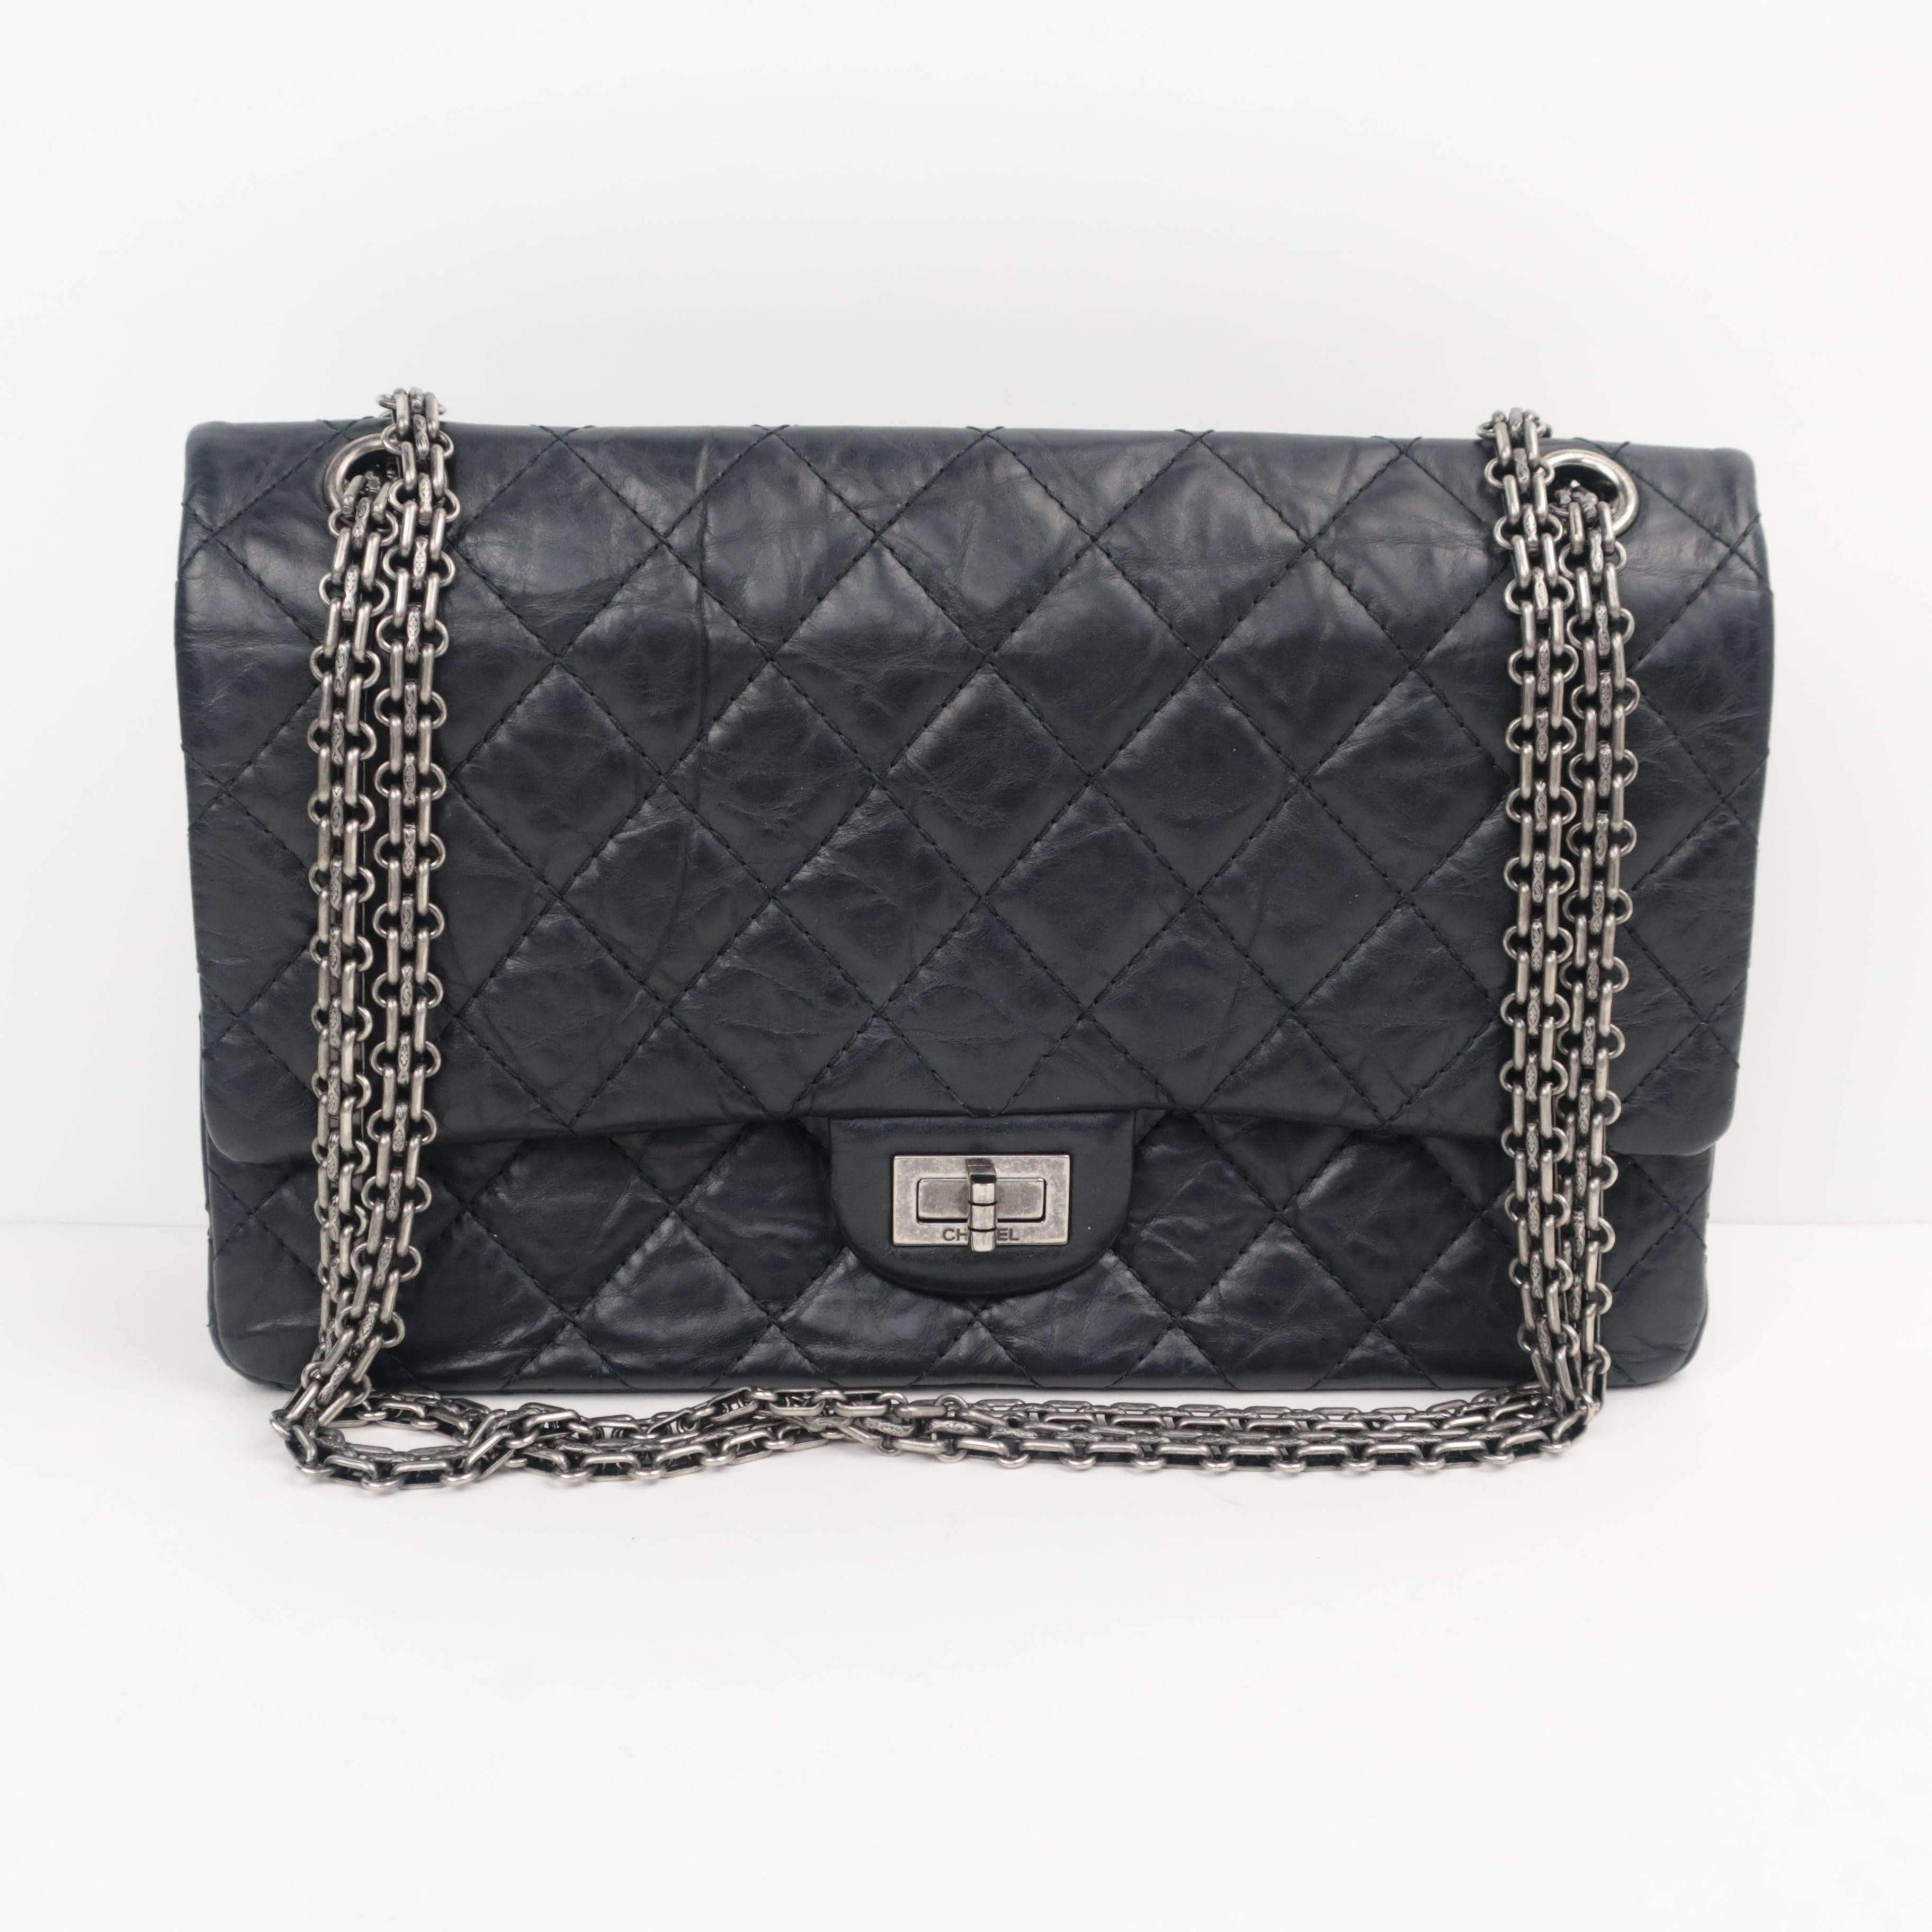 Will Chanel Fix My Bag? Everything You Need to Know About Chanel Repair chanel lambskin